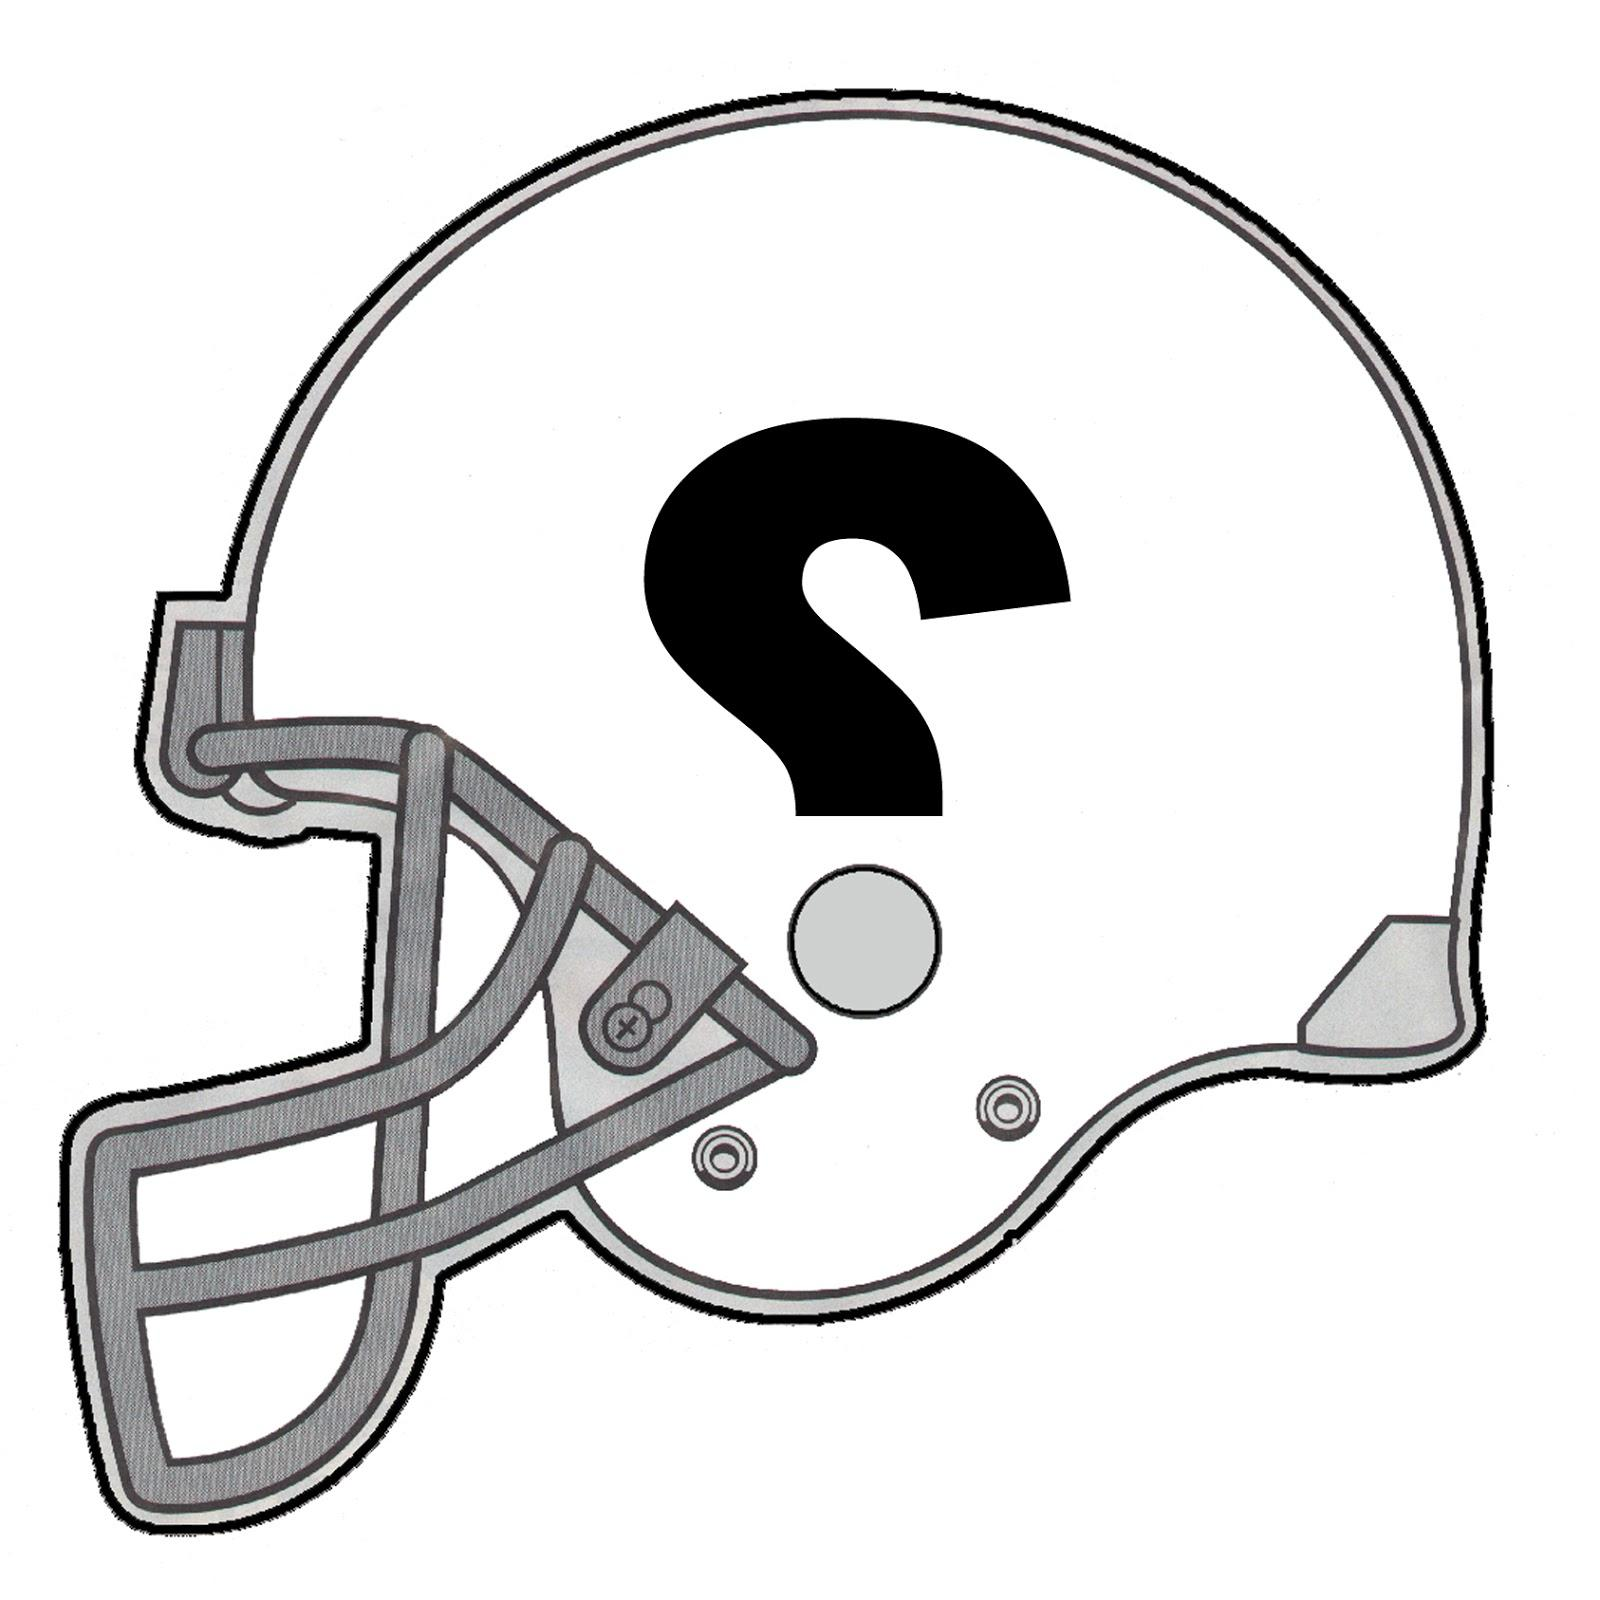 1600x1600 Best 15 Football Helmet Clip Art Vector Free Image Pictures